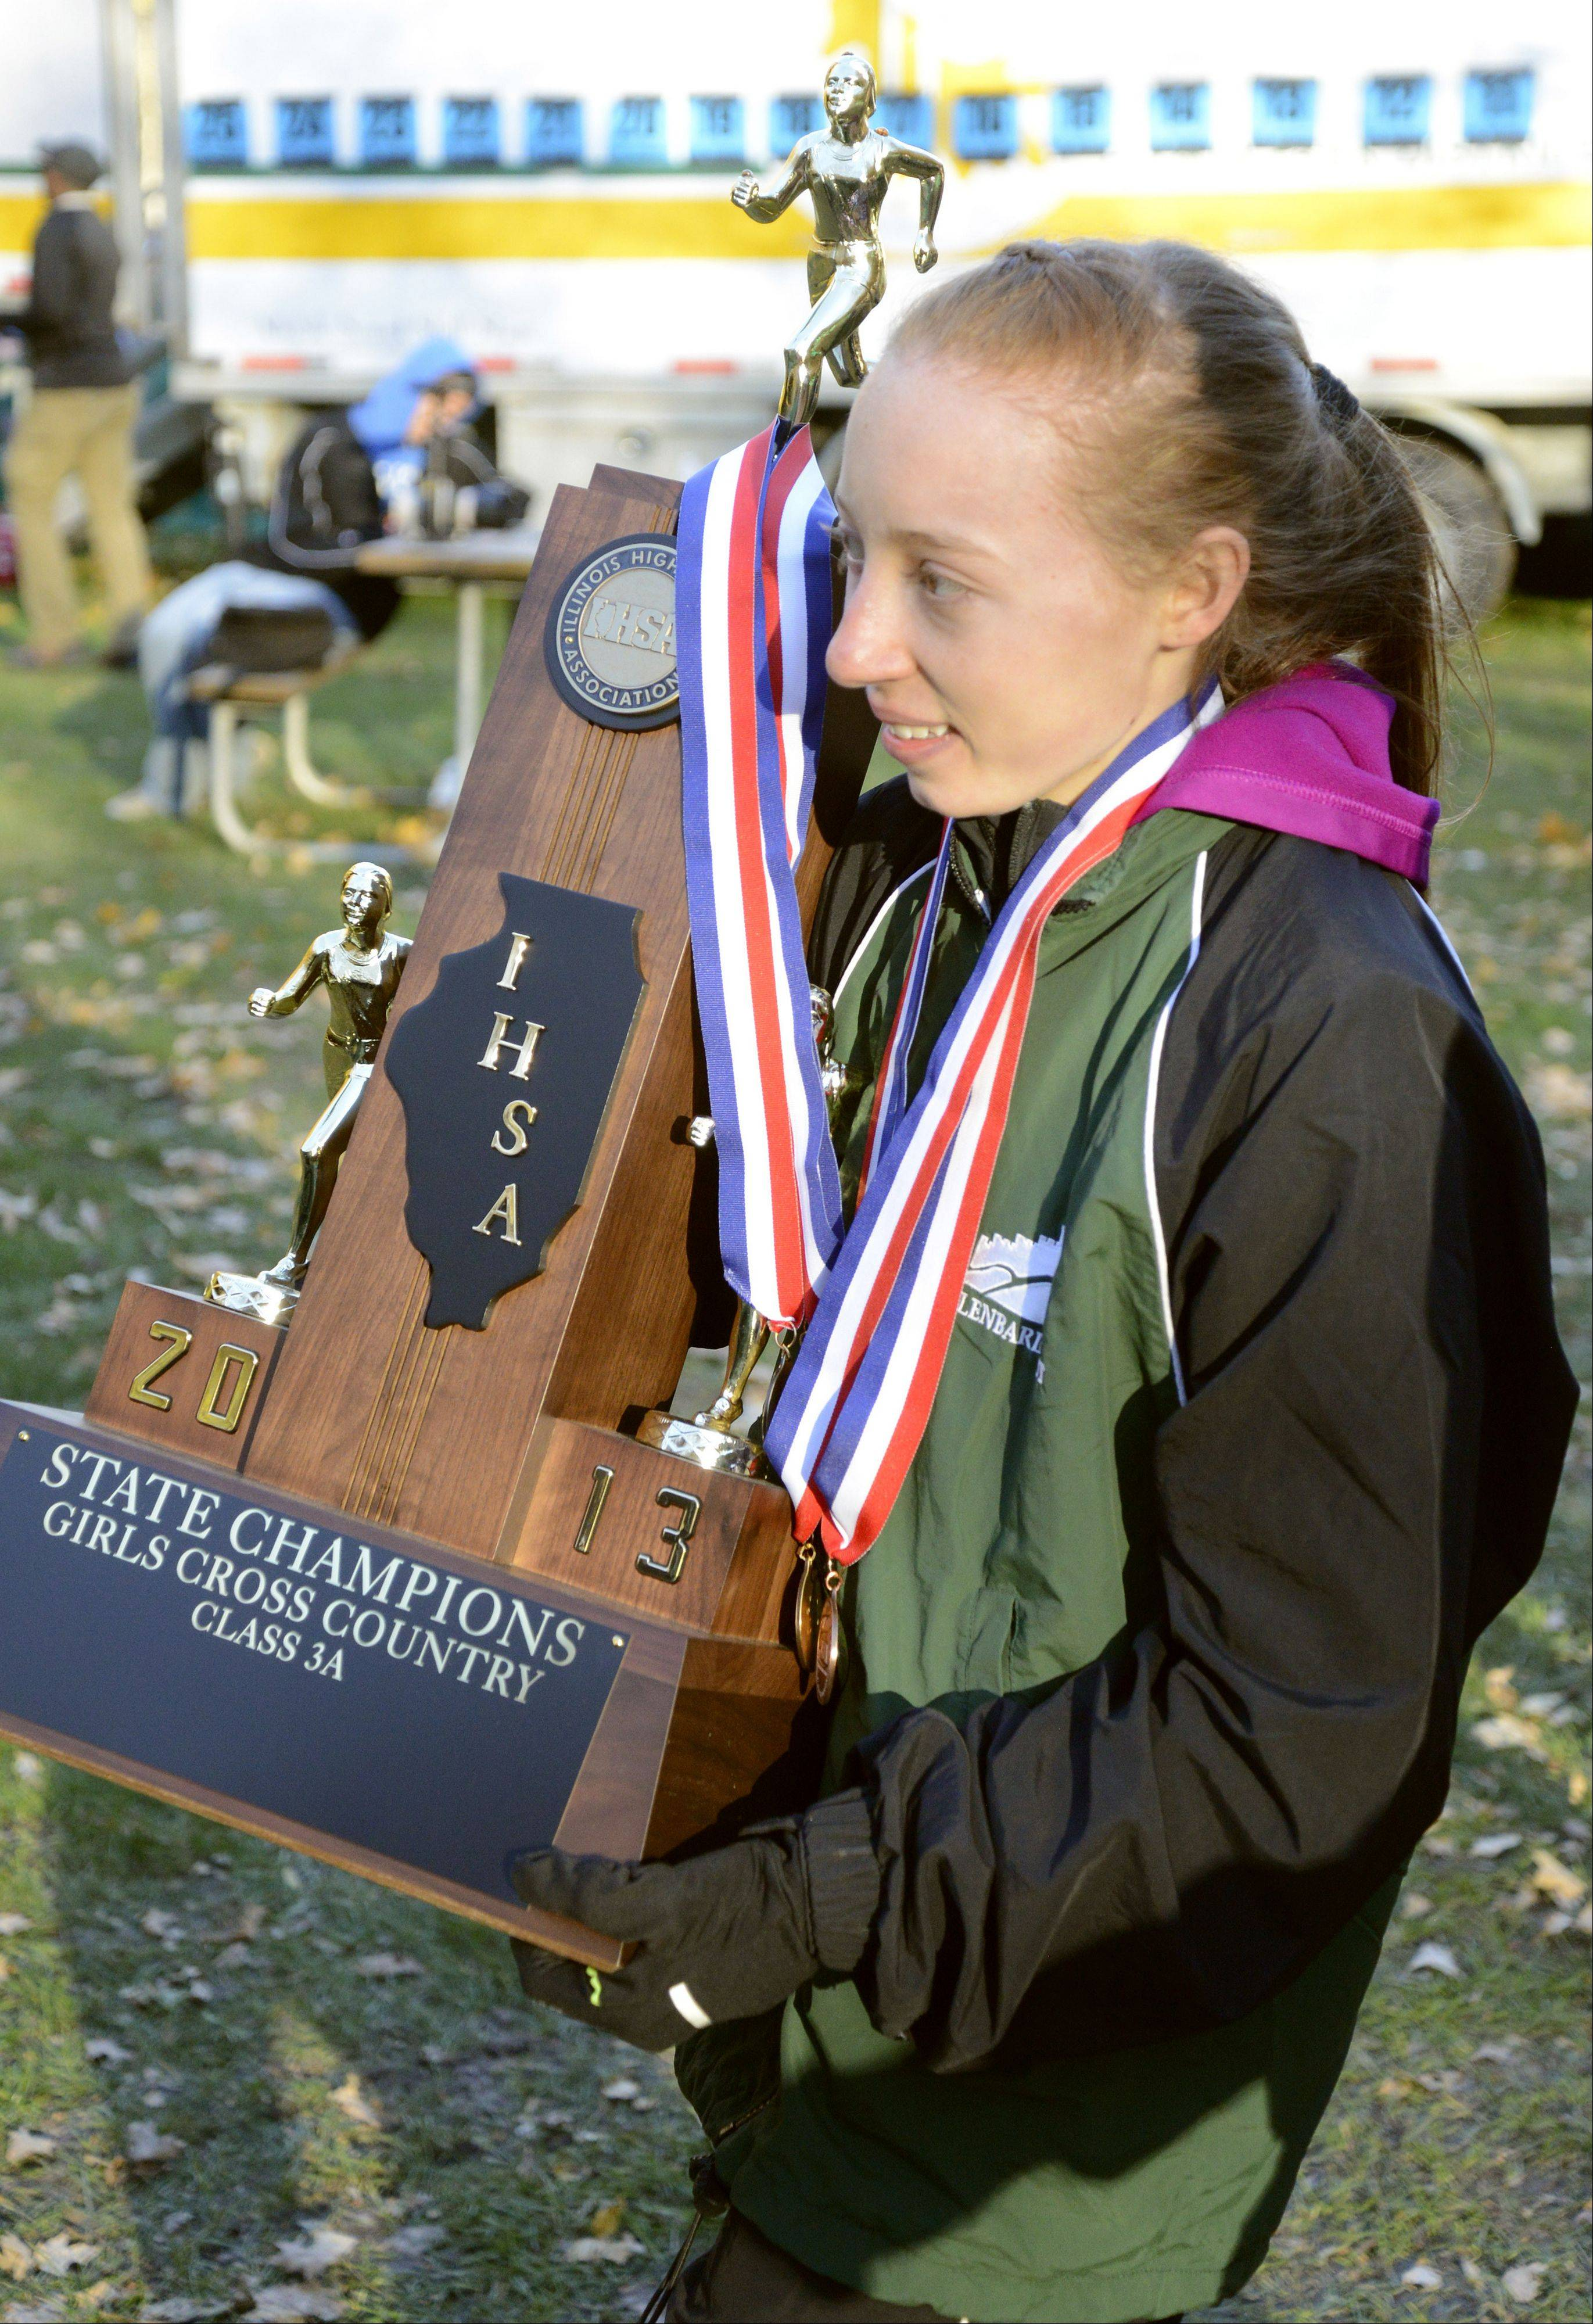 Glenbard West's Madeline Perez carries the team's Class 3A first place trophy at the IHSA cross country state finals at Detweiller Park in Peoria on Saturday, November 9.